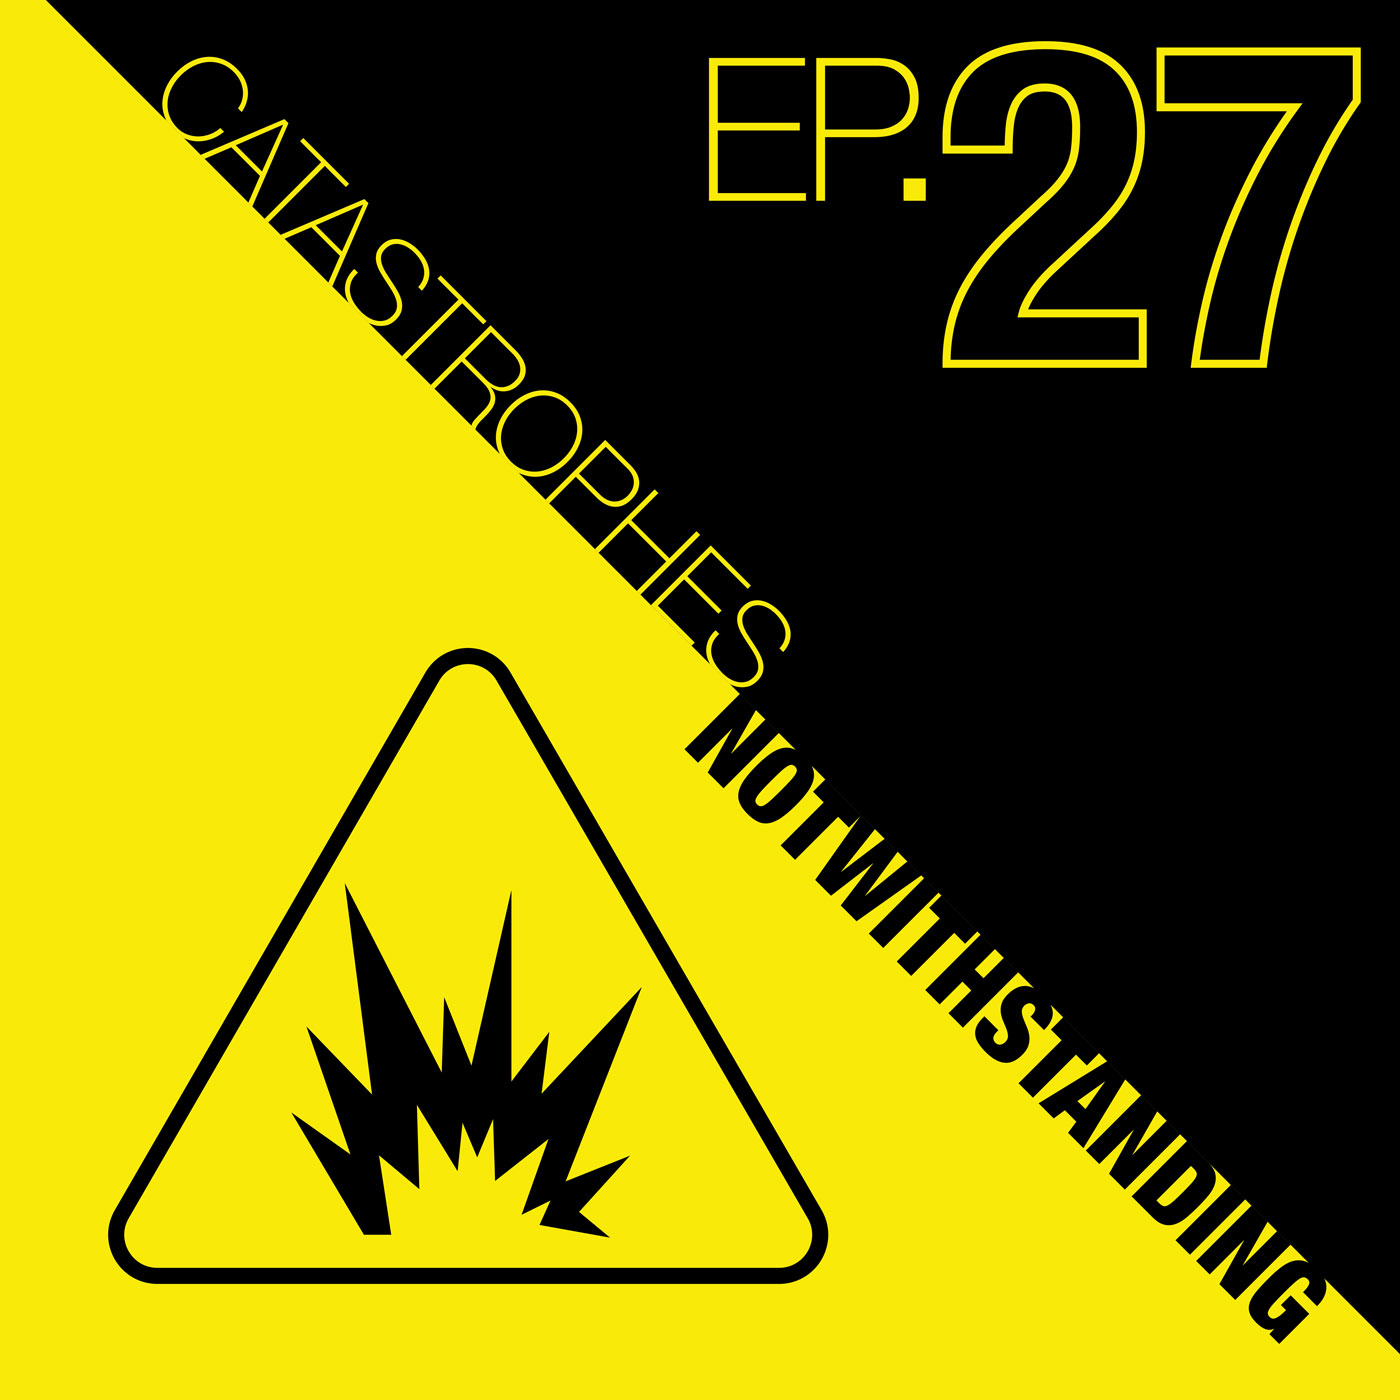 Cover Image of Catastrophes Notwithstanding Episode 27